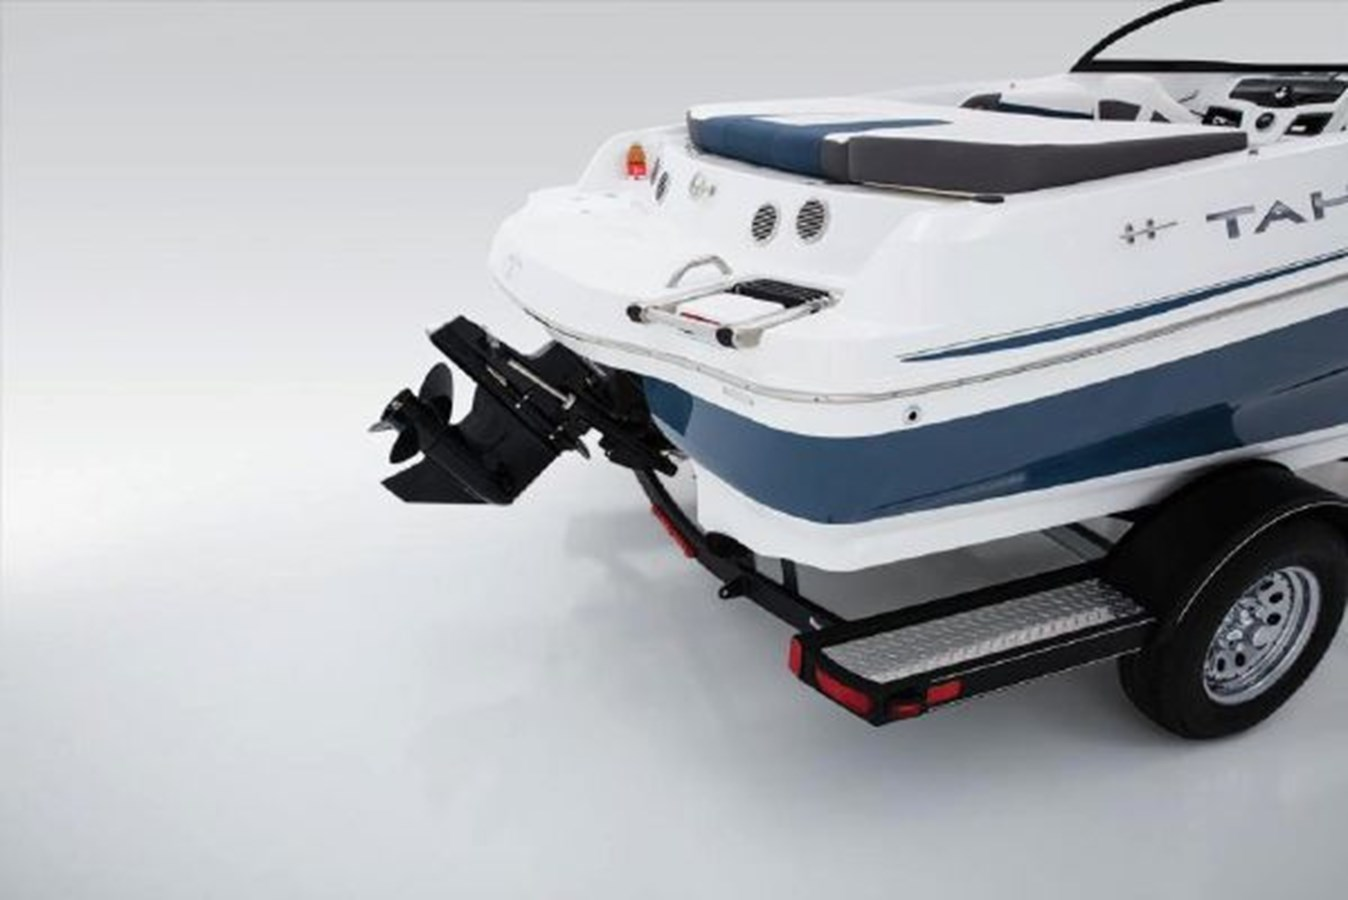 30 2018 Tahoe 500 TS Runabout 2751431